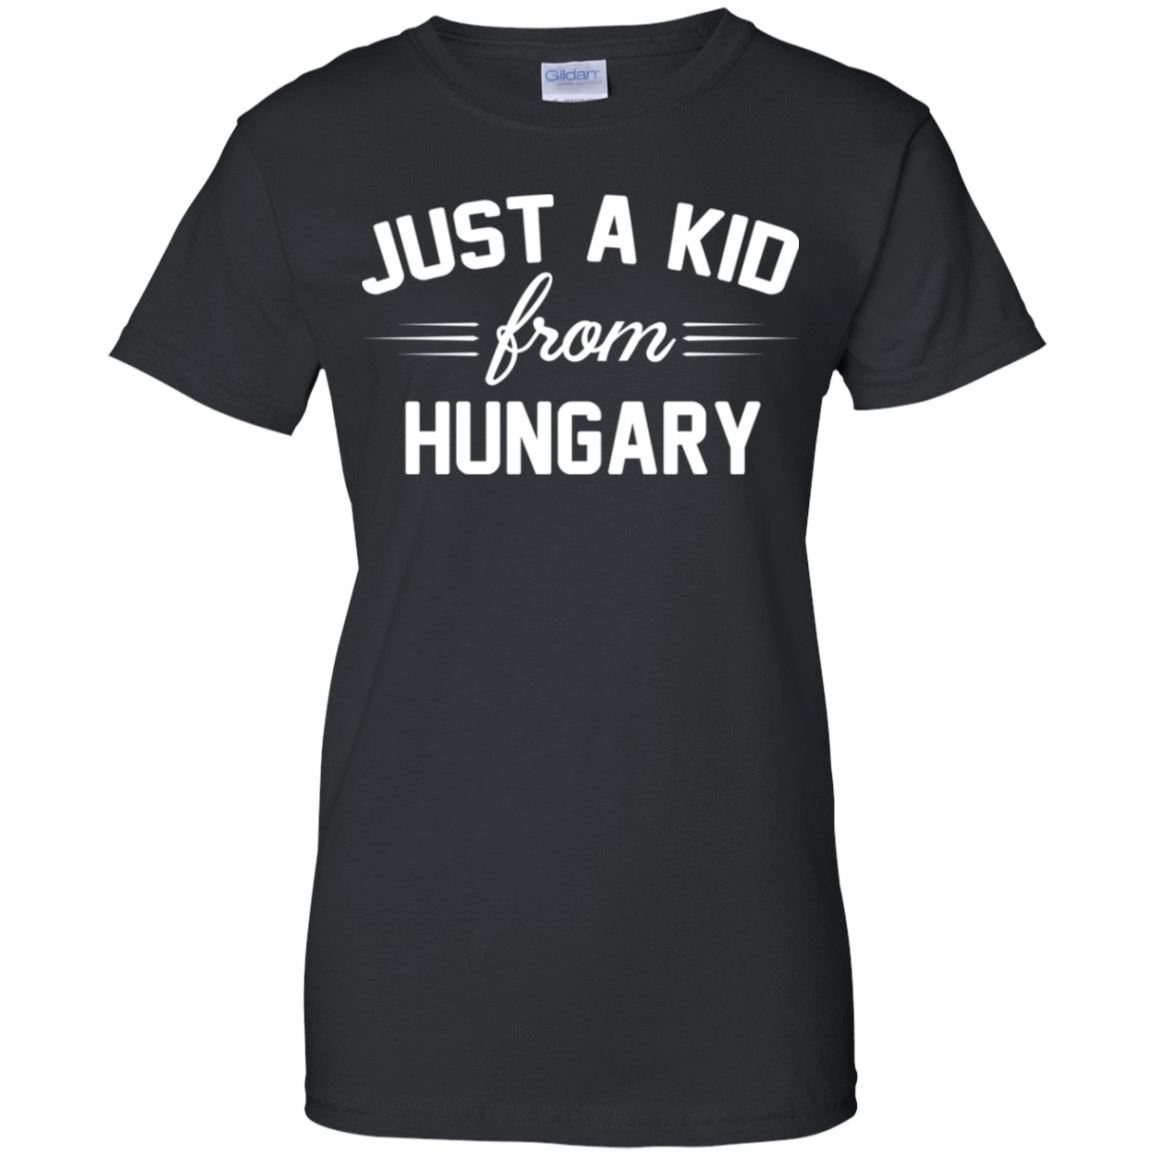 Just a Kid Store | Hungary T-Shirts, Hoodie, Tank 939-9248-72091617-44695 - Tee Ript